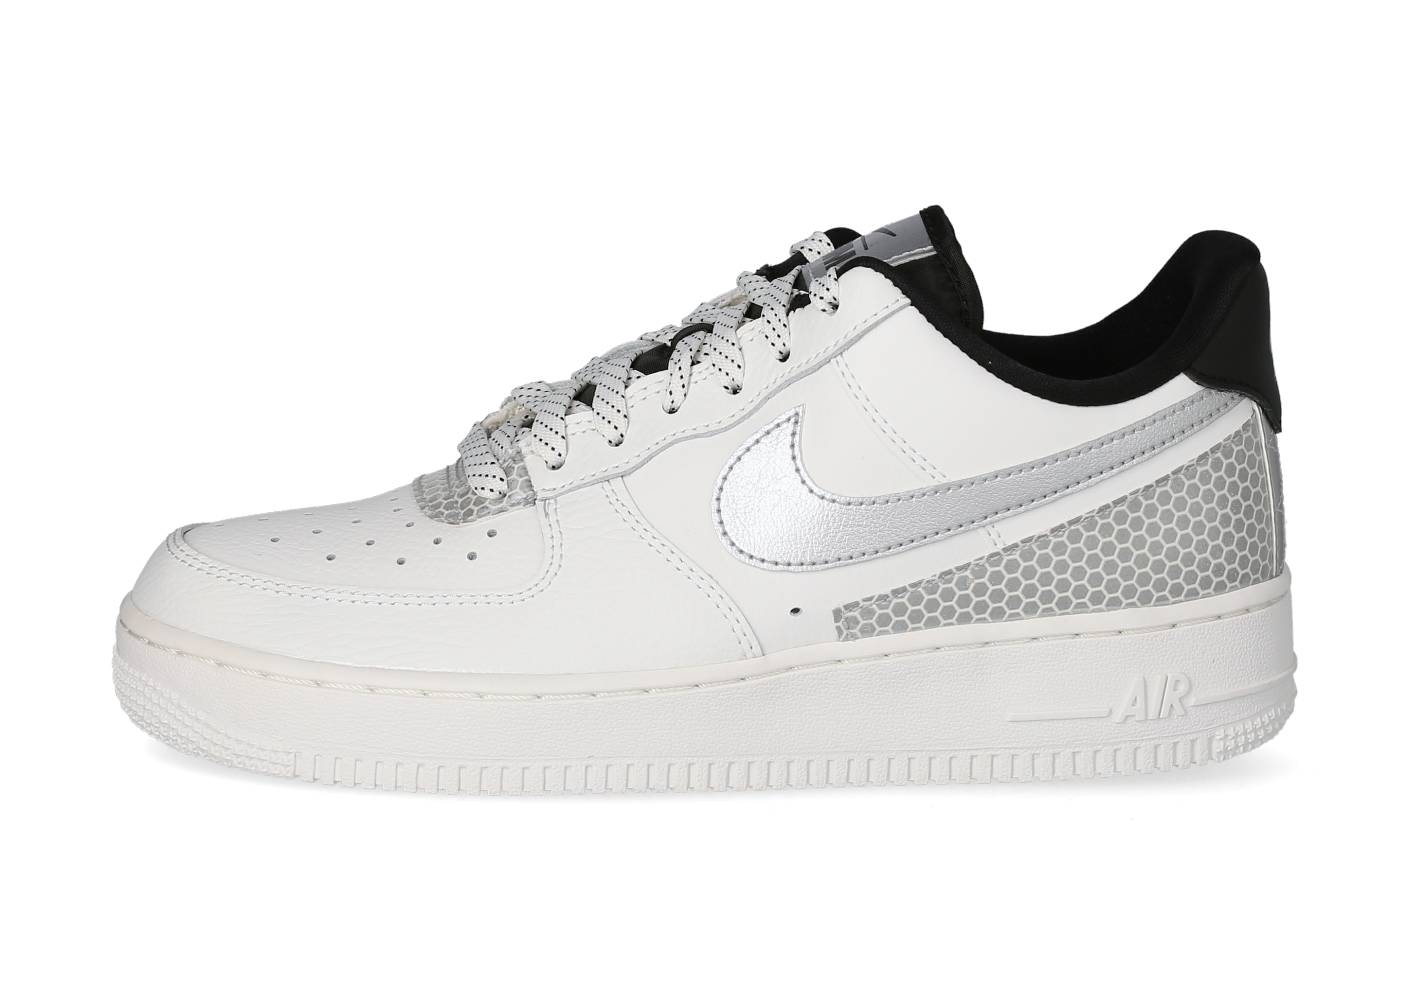 Nike Homme Air Force 1 Lv8 3m Blanche Baskets 43